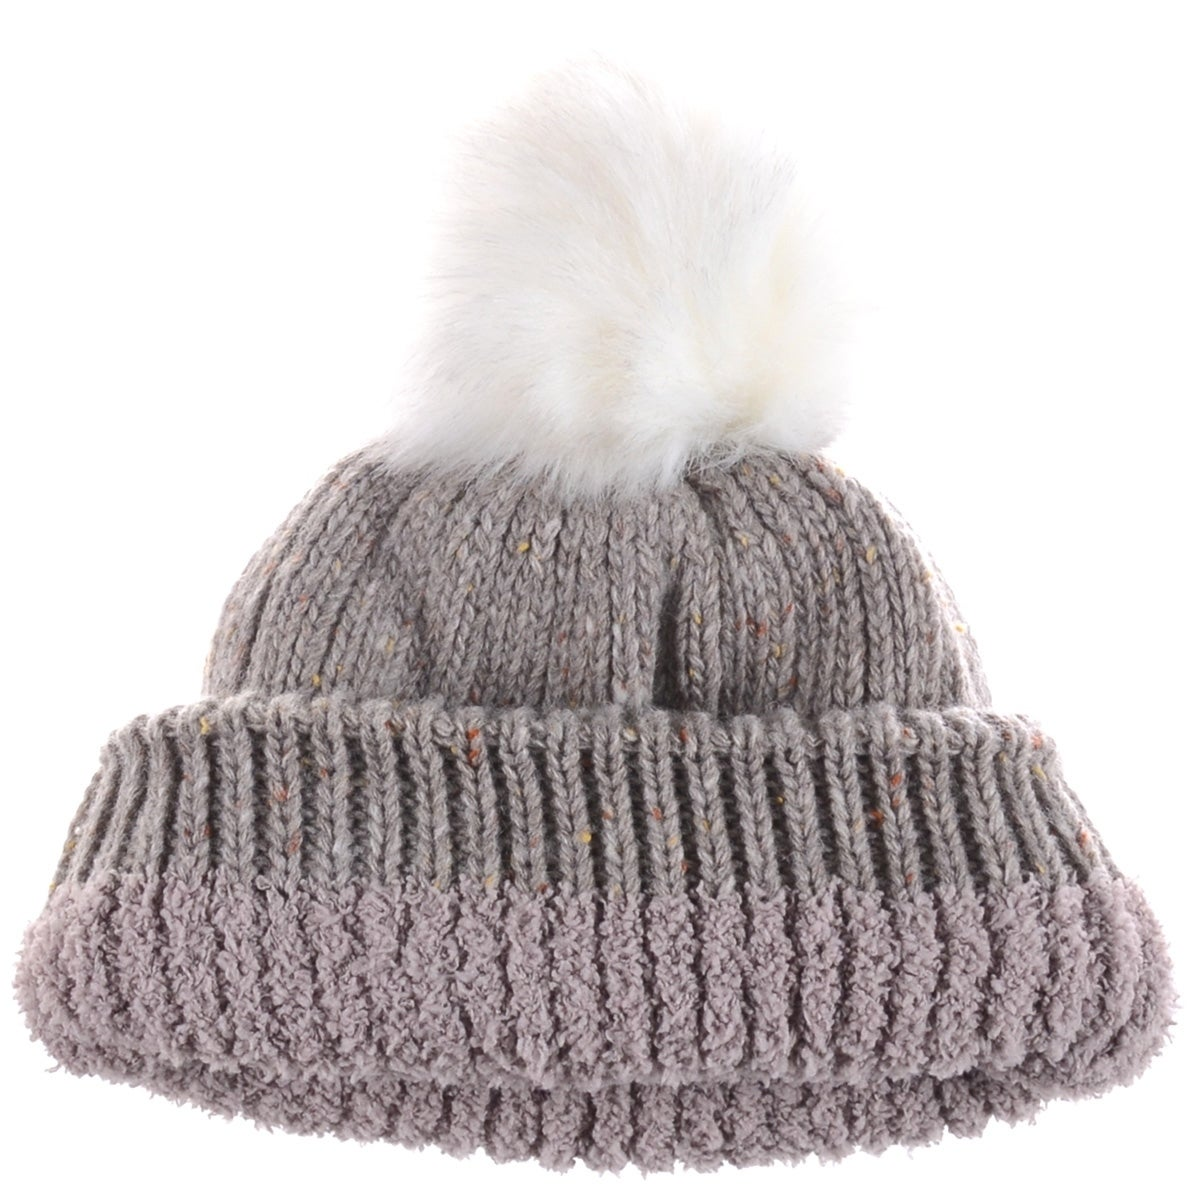 Fleece Lined Chunky Knit Beanie With Faux Fur Pom in Gray Plush Apparel kED3uGTlLL